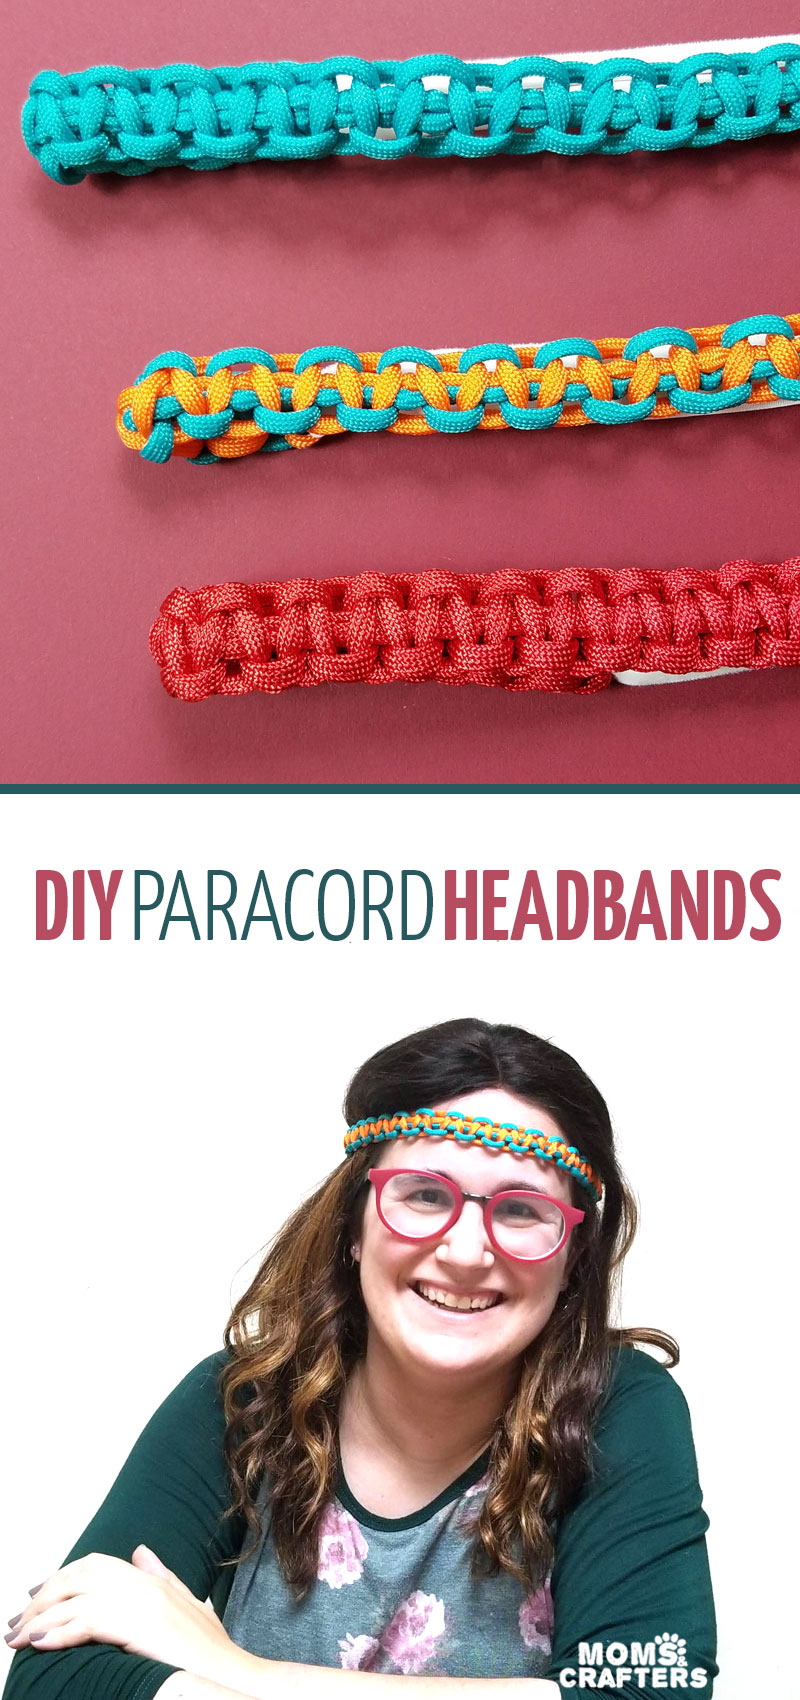 Click to learn how to make your own paracord headbands with this unique paracord craft! If you're looking for cool paracord projects, these weaves instructions teach you the basics for beginners. #paracord #diy #crafts